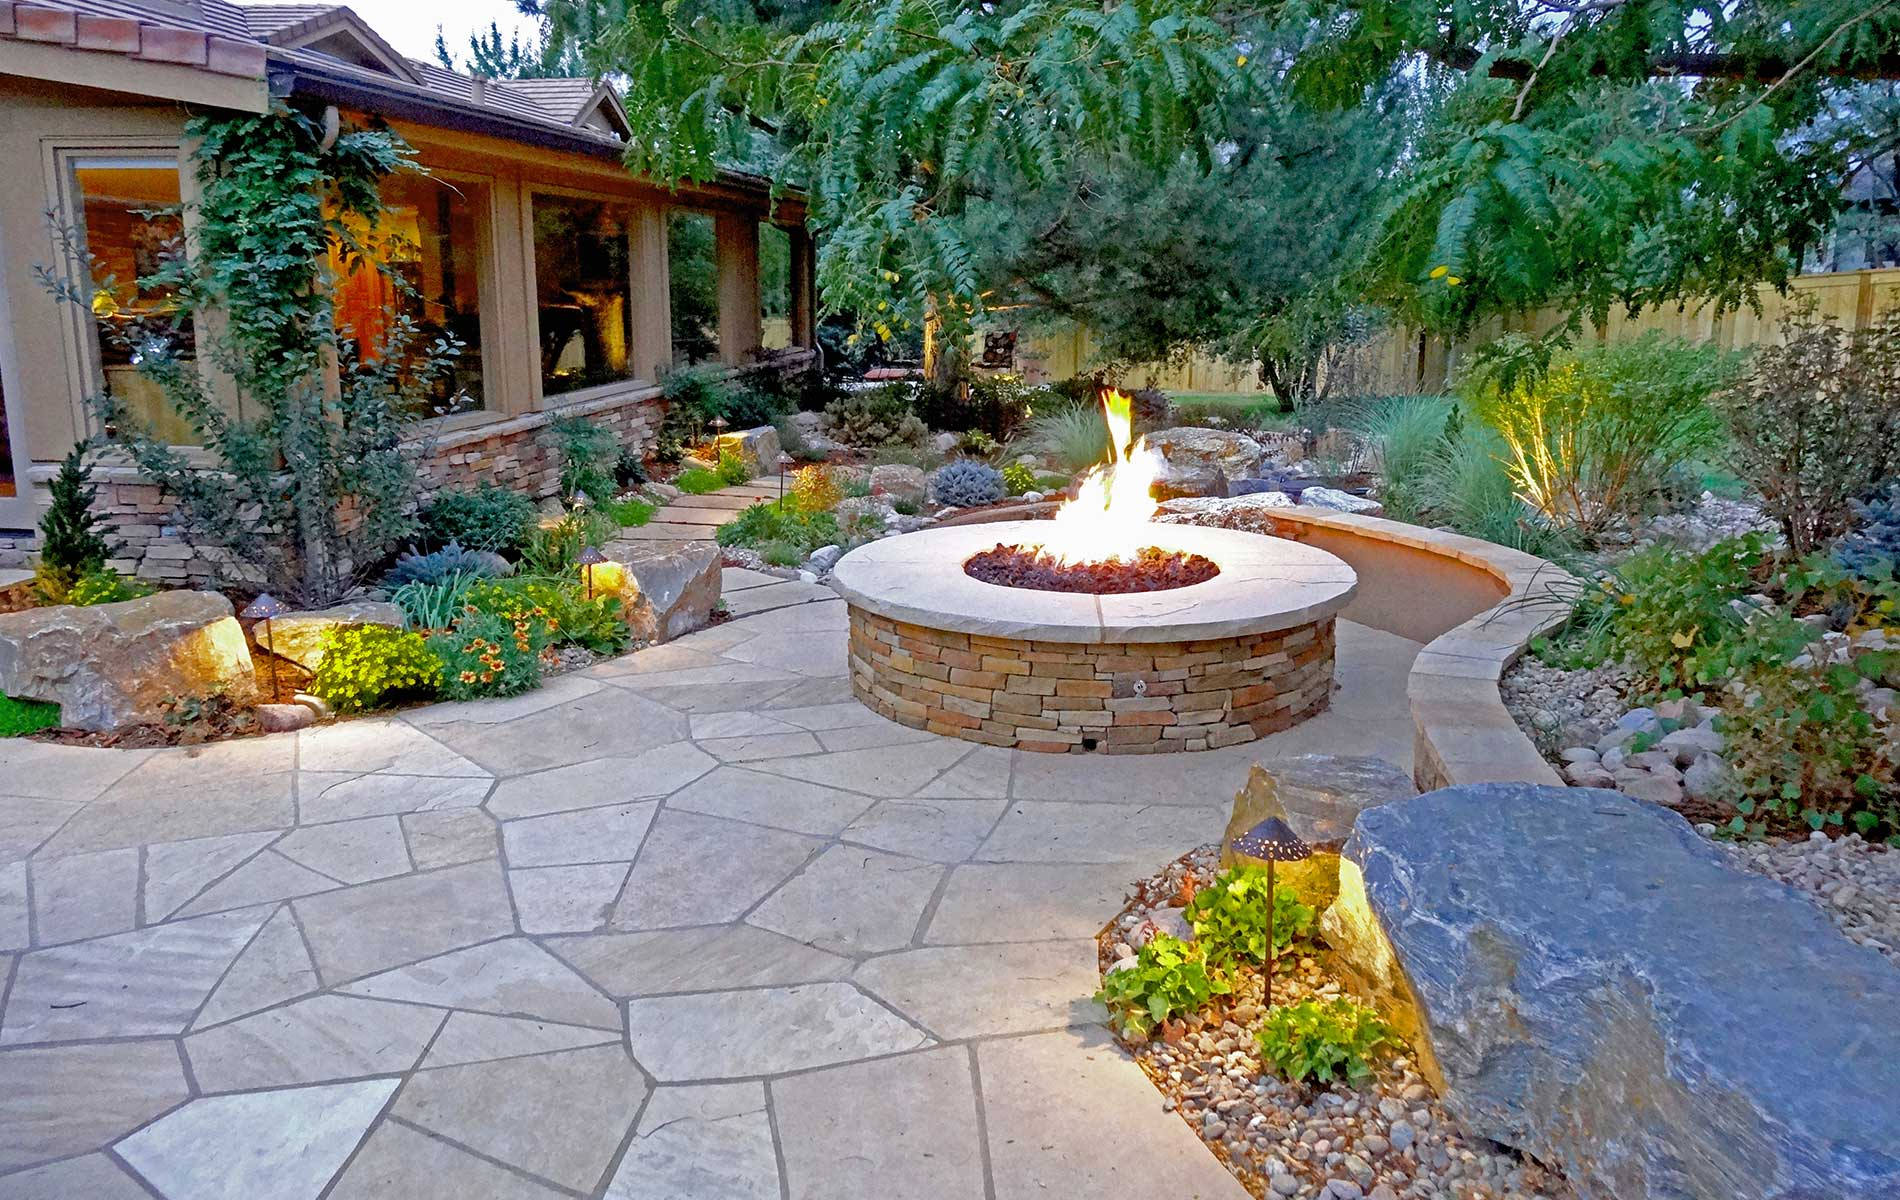 Best Stone Patio Ideas, Designs and Installation Tips ... on Backyard Masonry Ideas id=66469